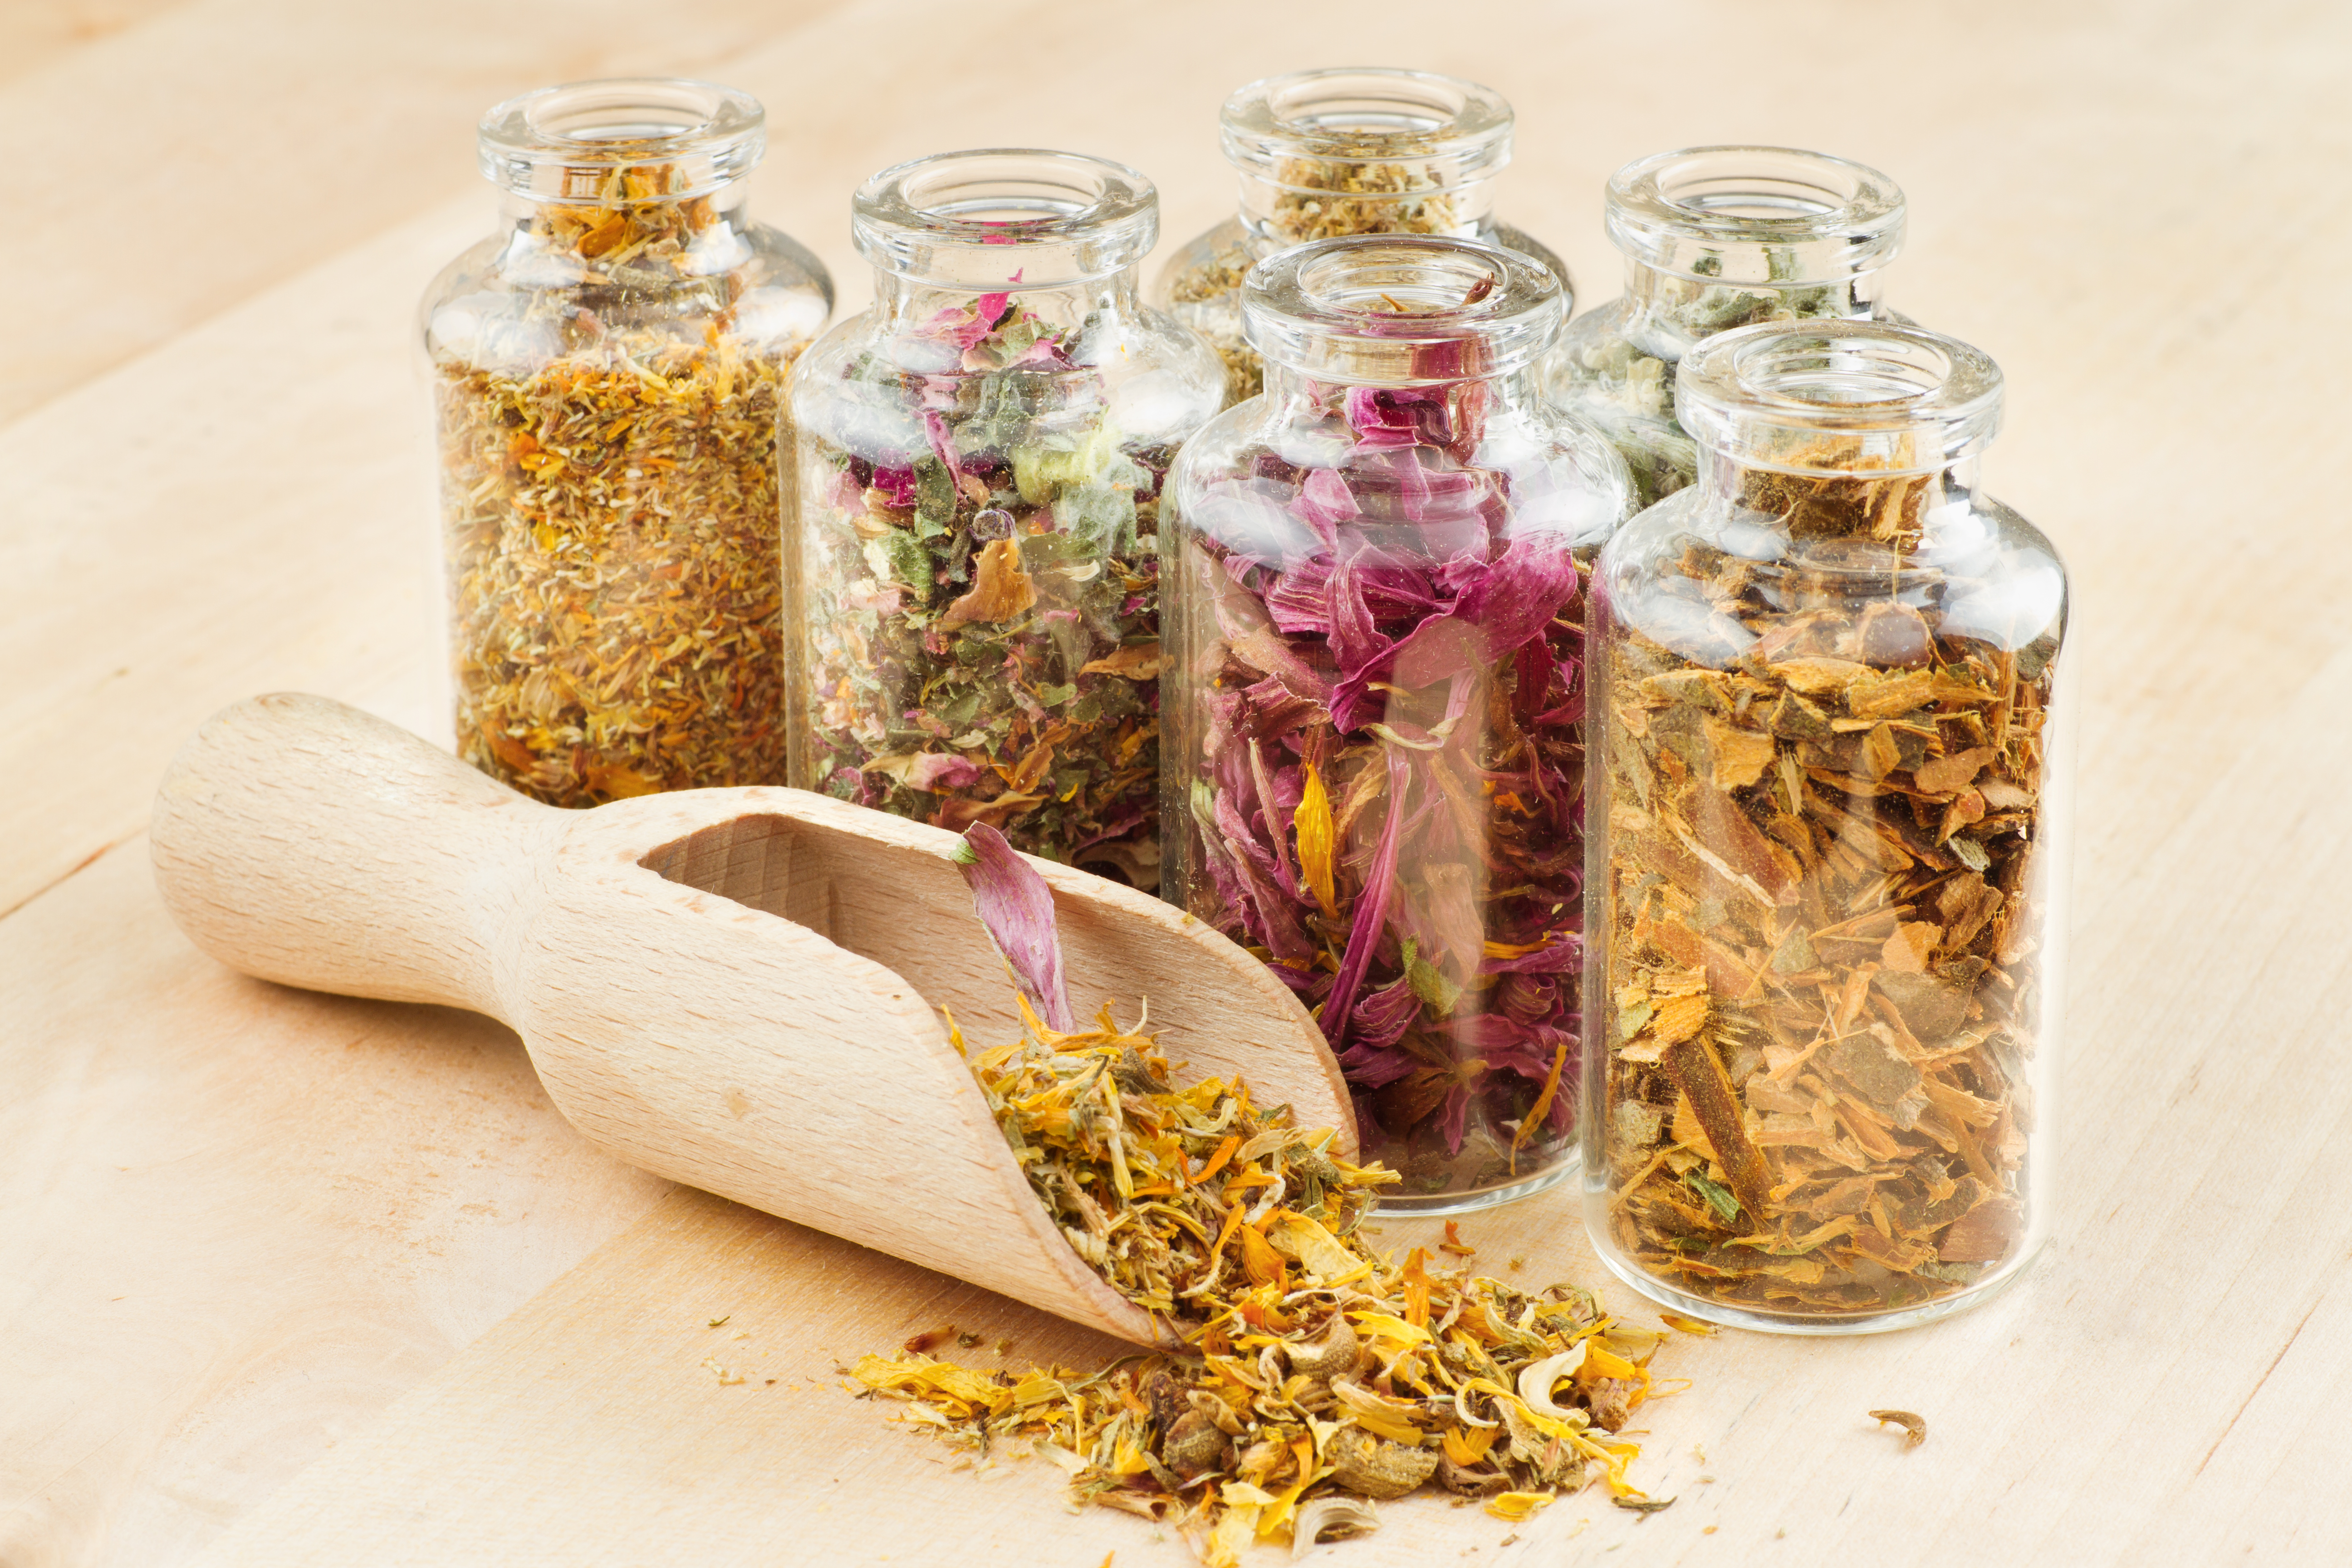 healing herbs in glass bottles and wooden scoop, herbal medicine